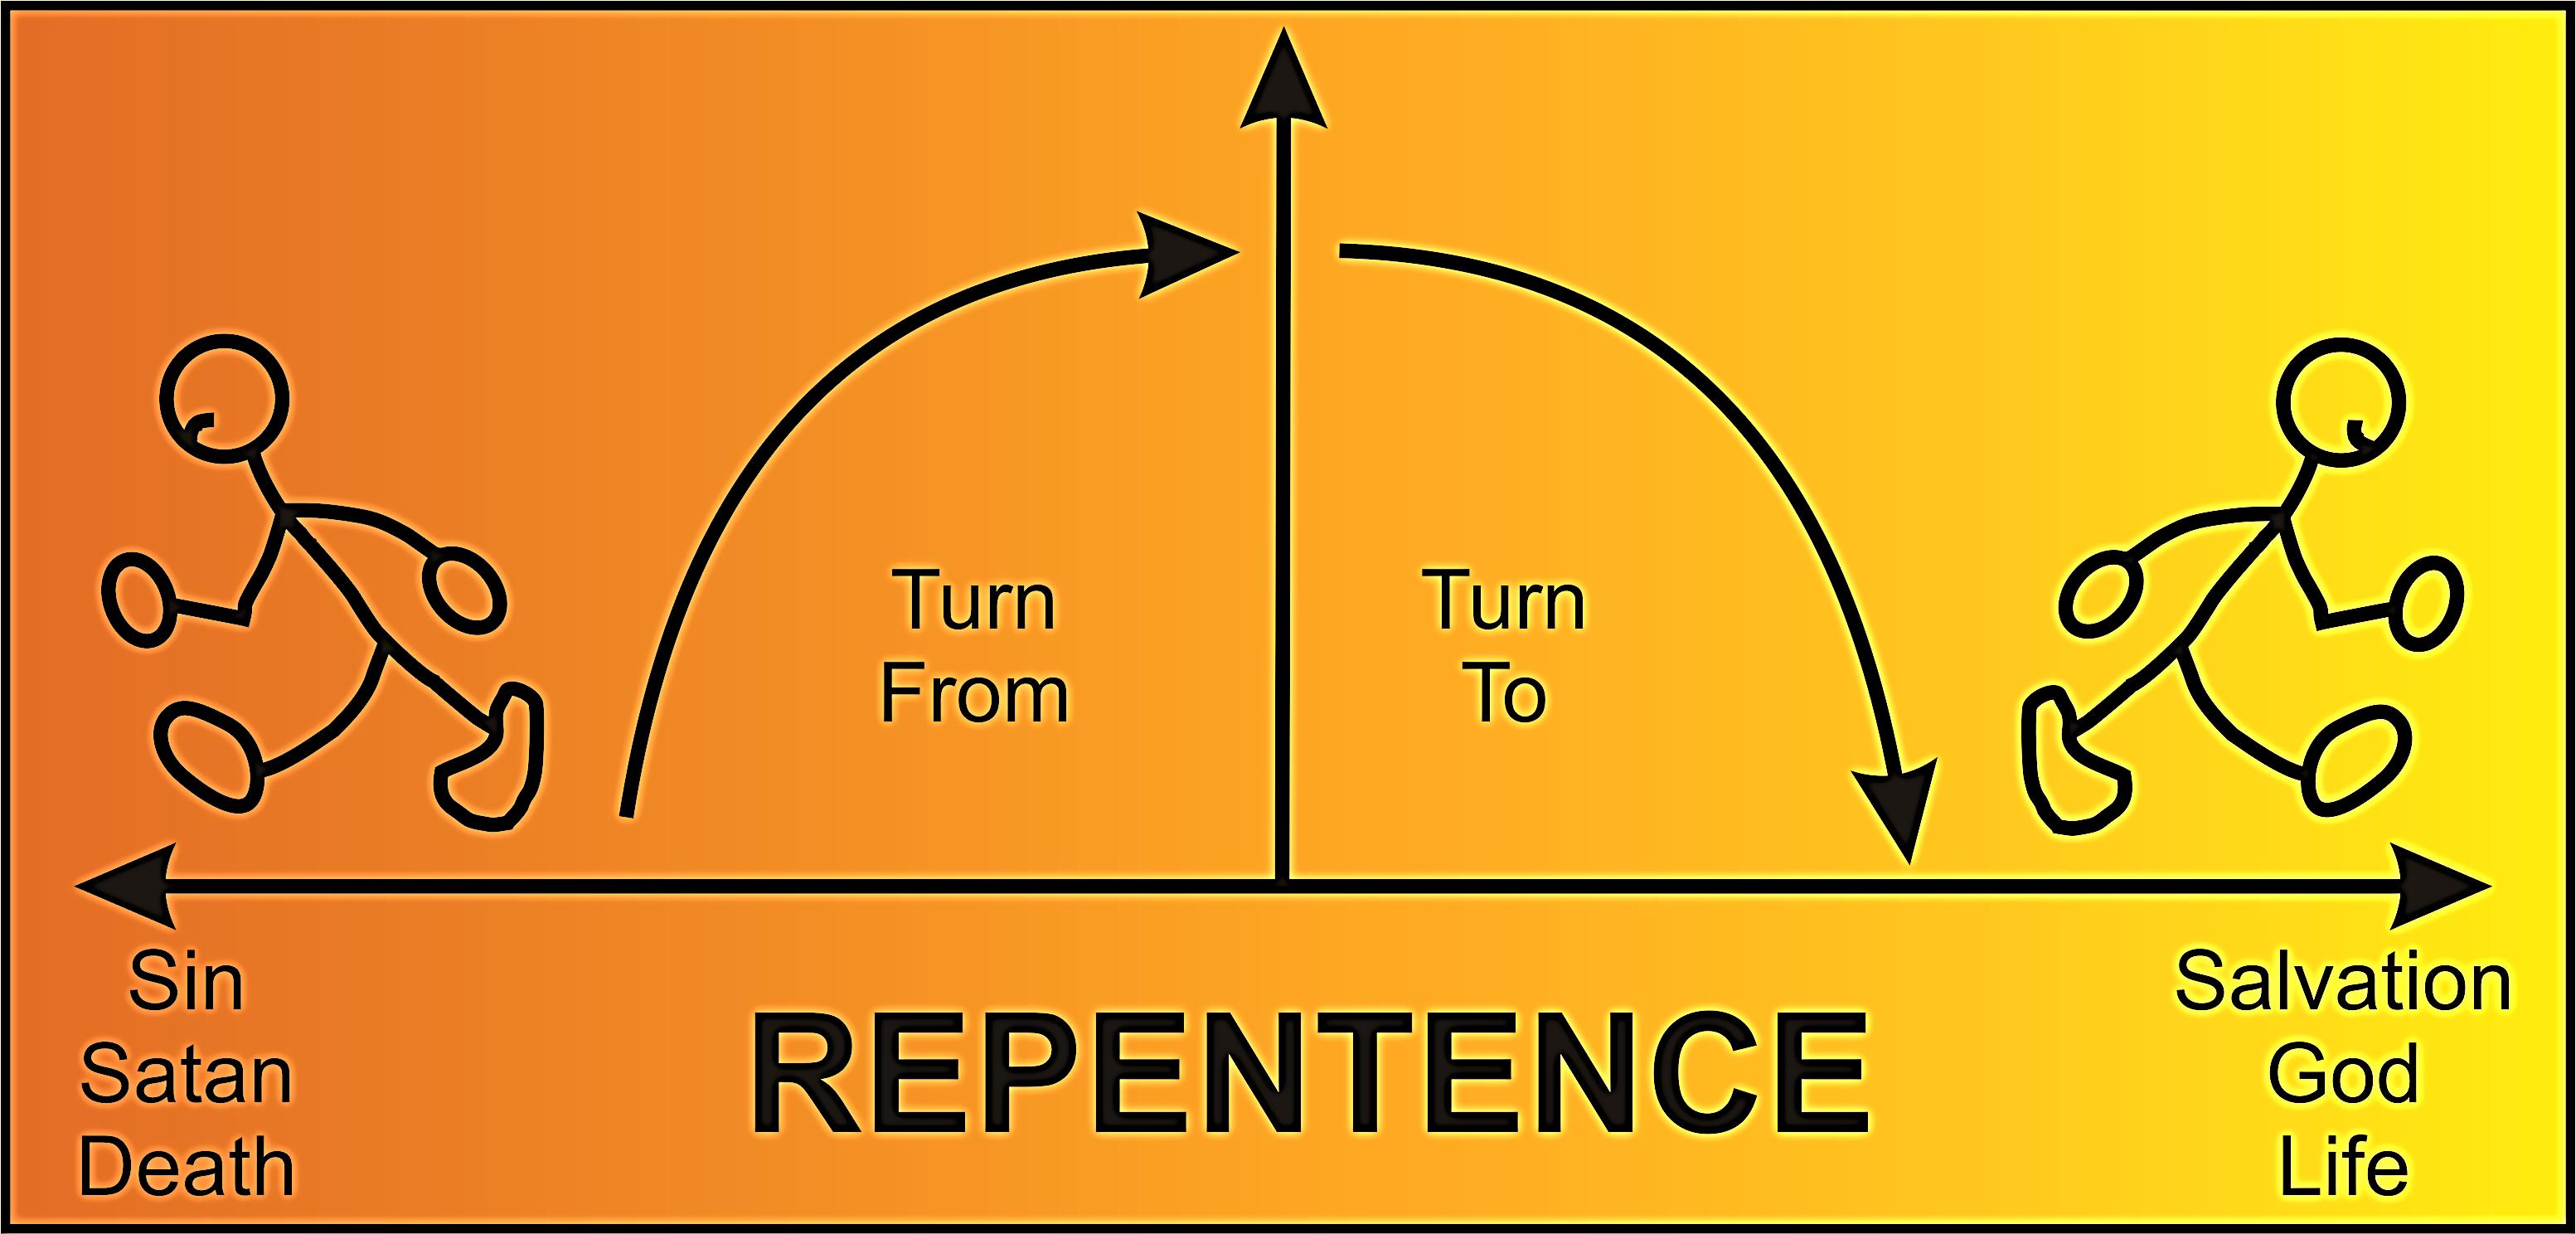 Prayer from alcoholism will not help without repentance